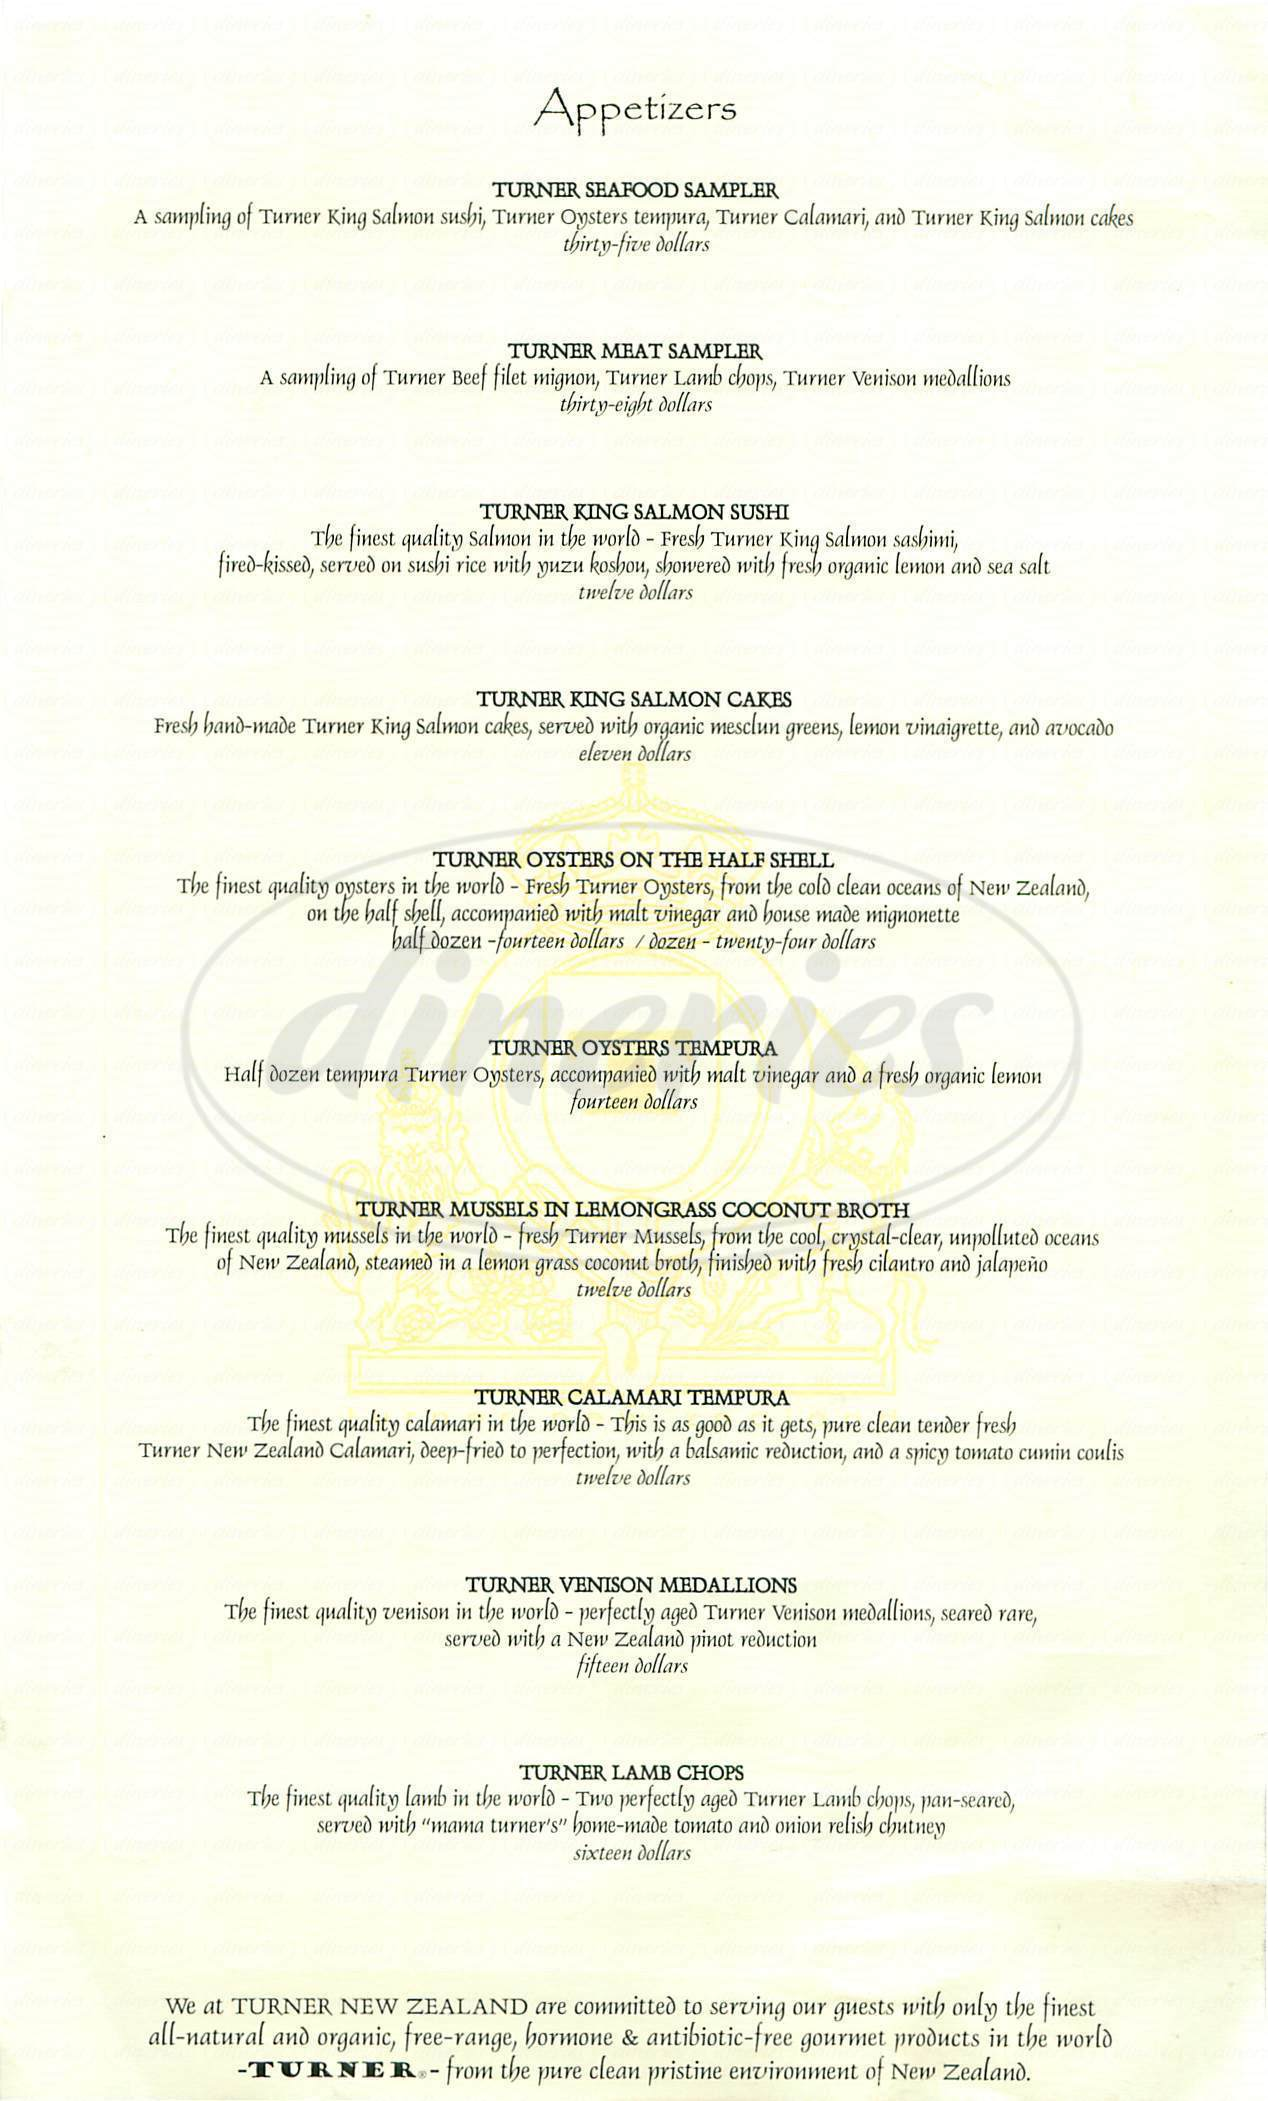 menu for Turner New Zealand